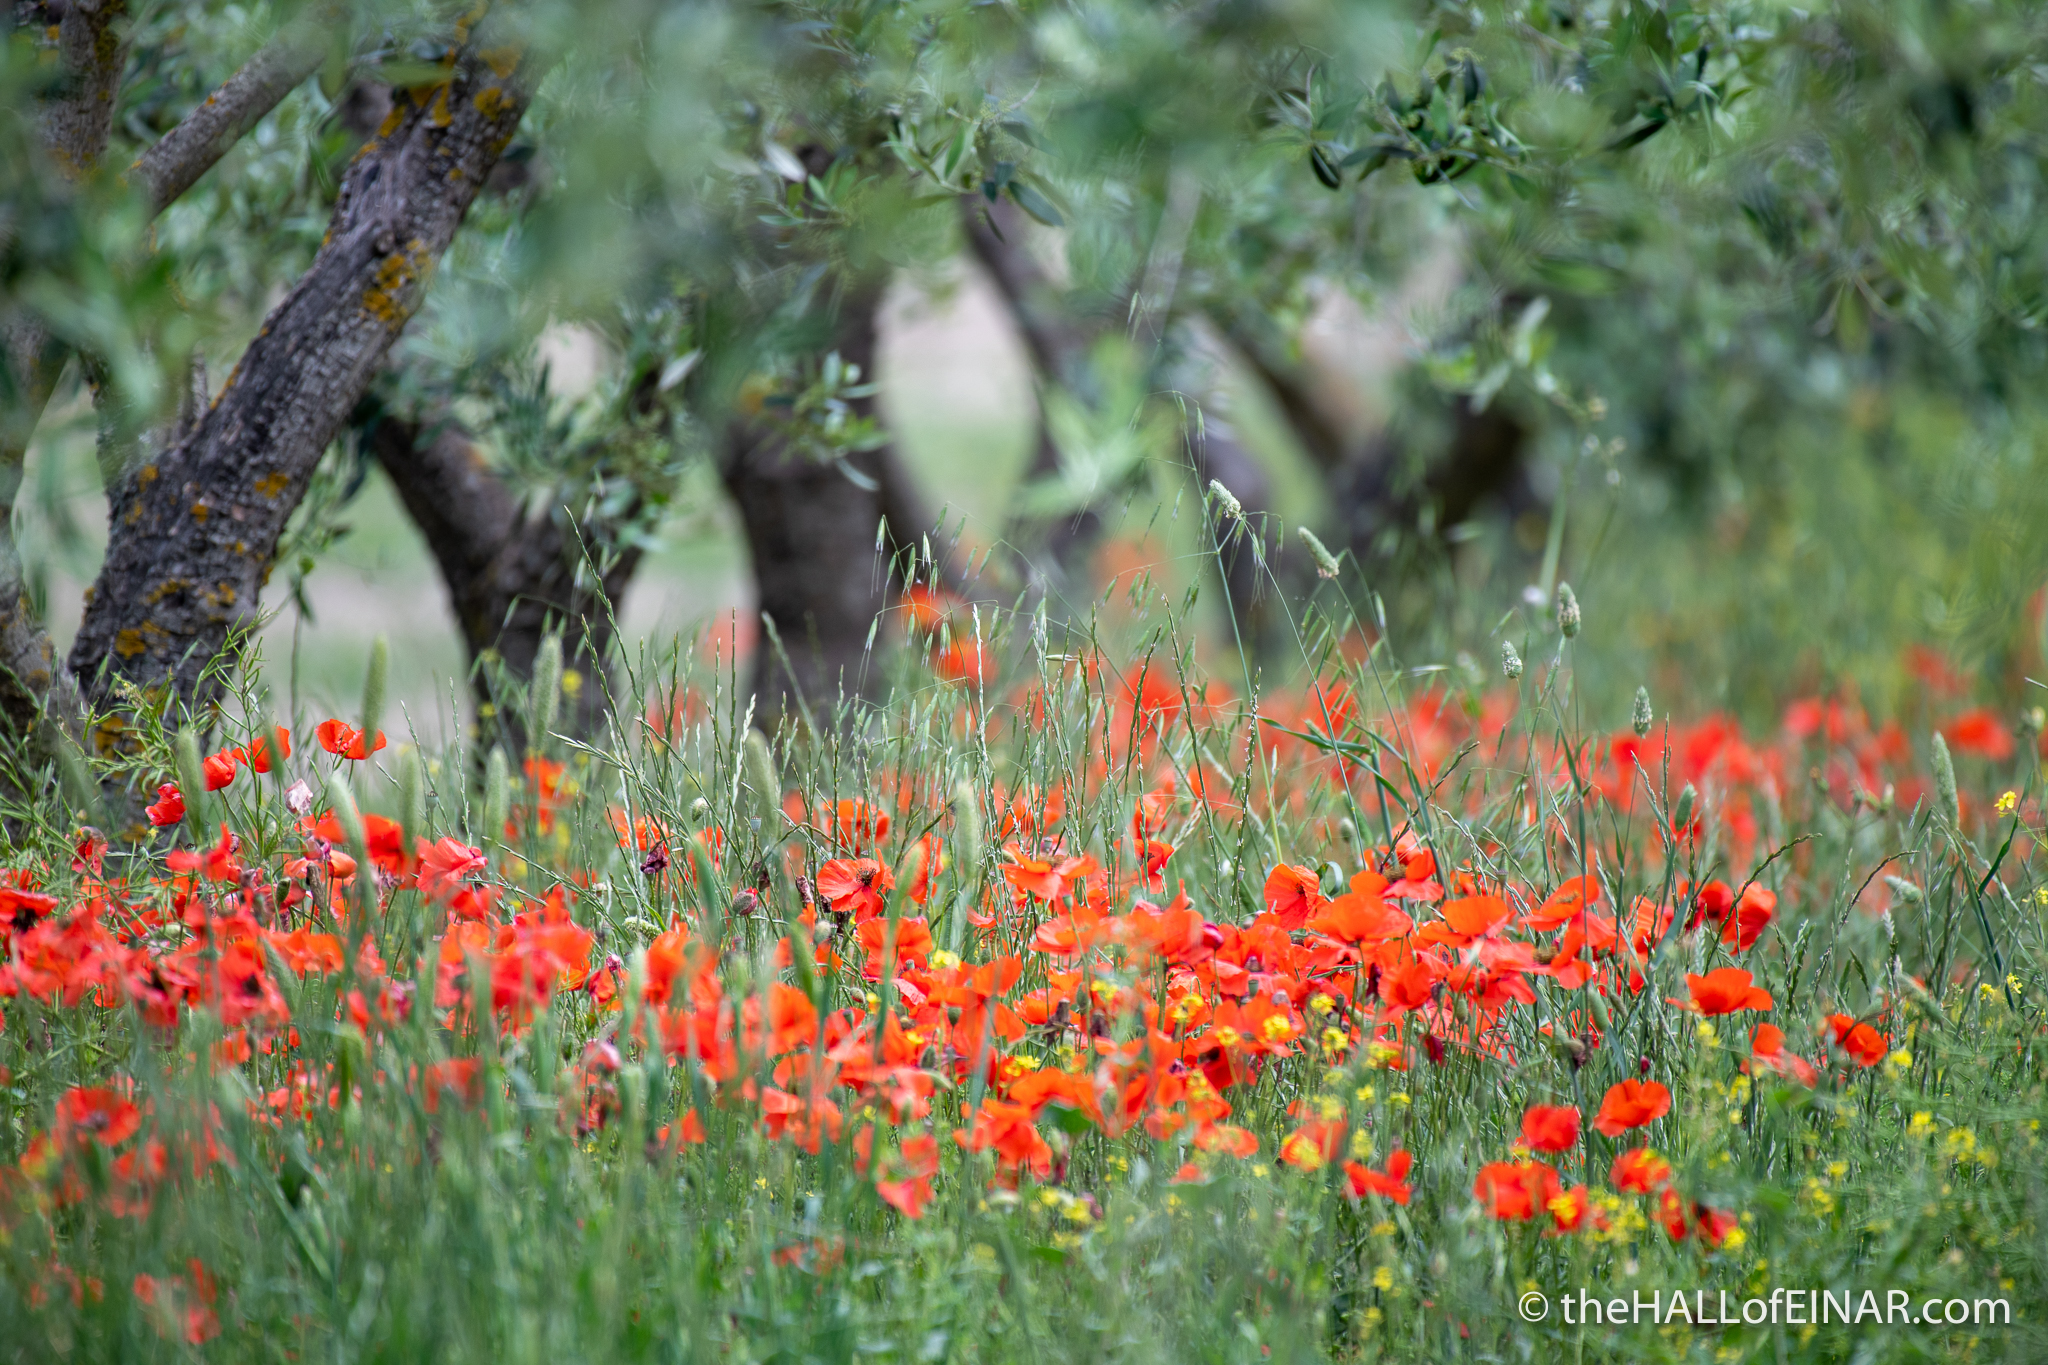 Poppies - Southern Italy - The Hall of Einar - photograph (c) David Bailey (not the)